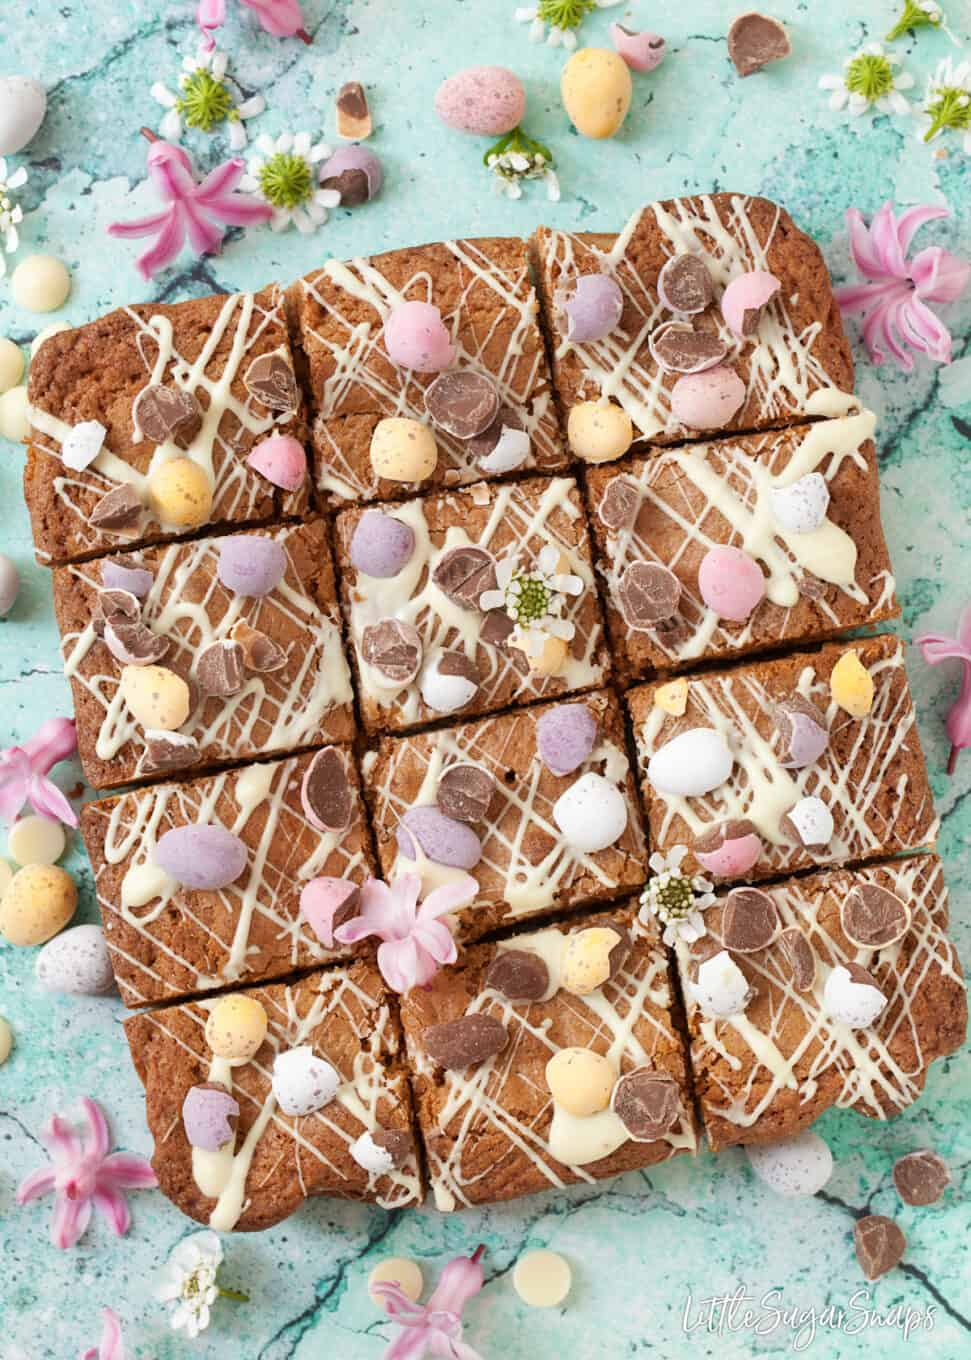 Freshly cut squares of Brown butter blondies with coconut. Decorated with white chocolate drizzle small easter eggs and spring flowers. On a blue worktop